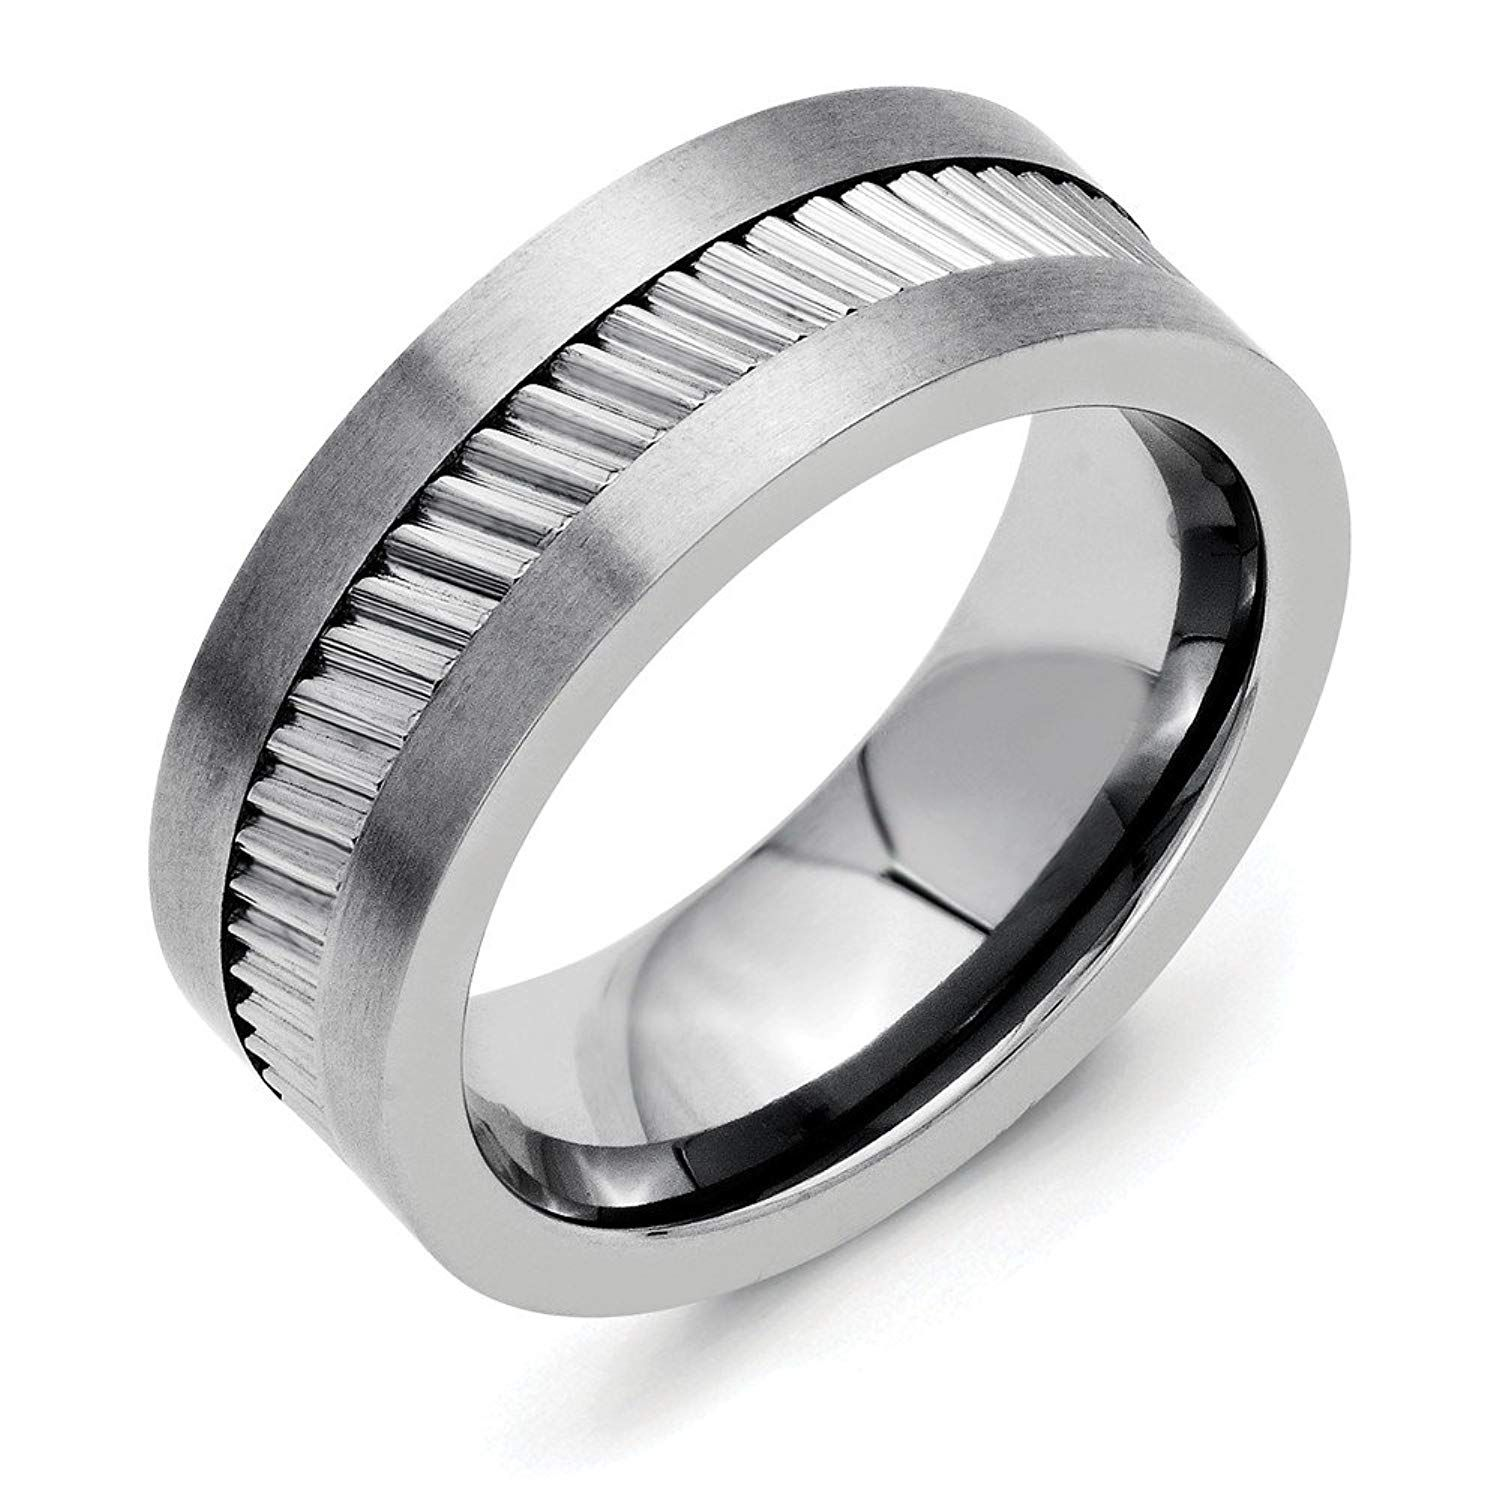 Perfect Jewelry Gift Stainless Steel Base with Sawtooth